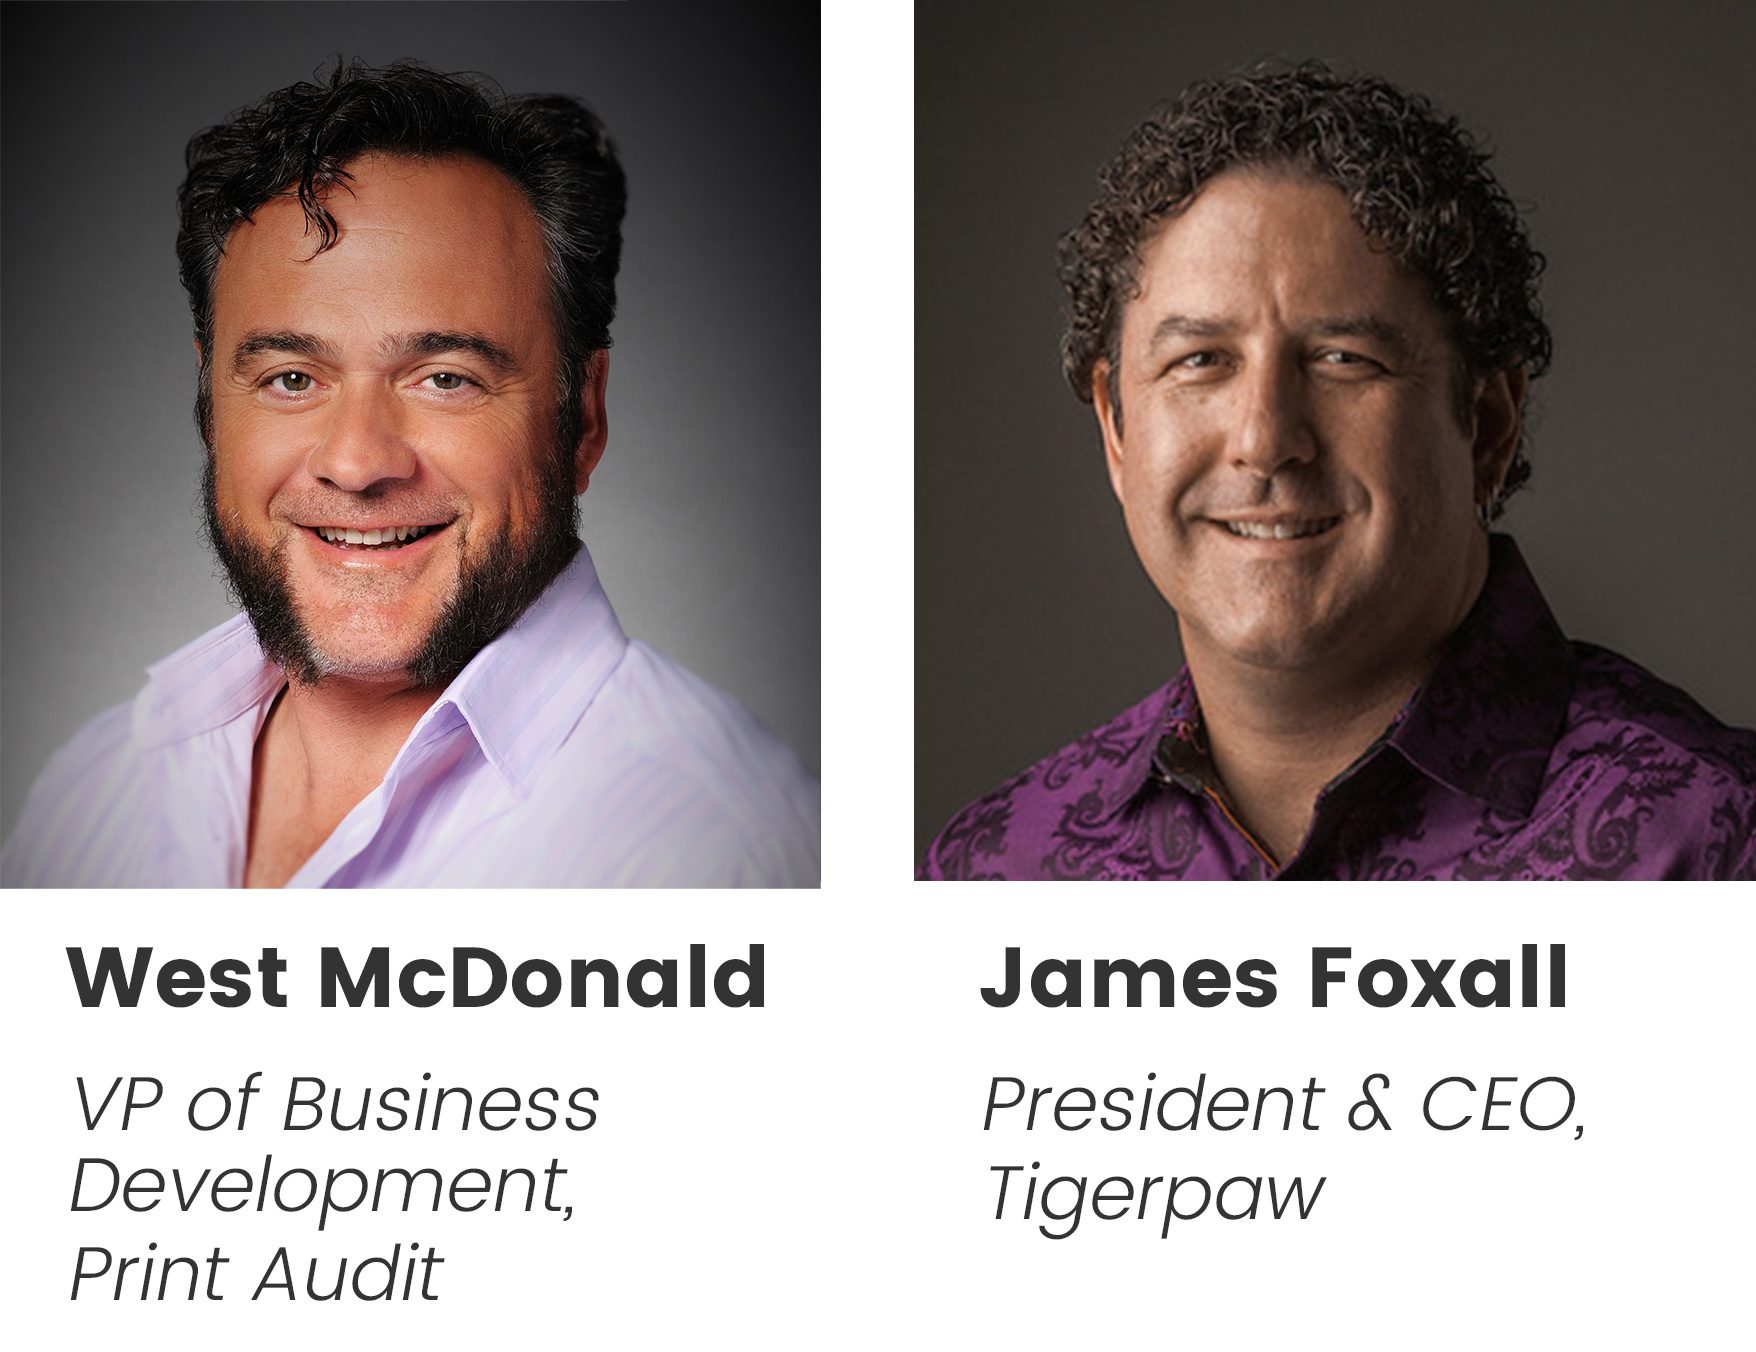 In an upcoming webinar, West McDonald and James Foxall will outline four must-have tools to track, analyze and increase contract profitability.